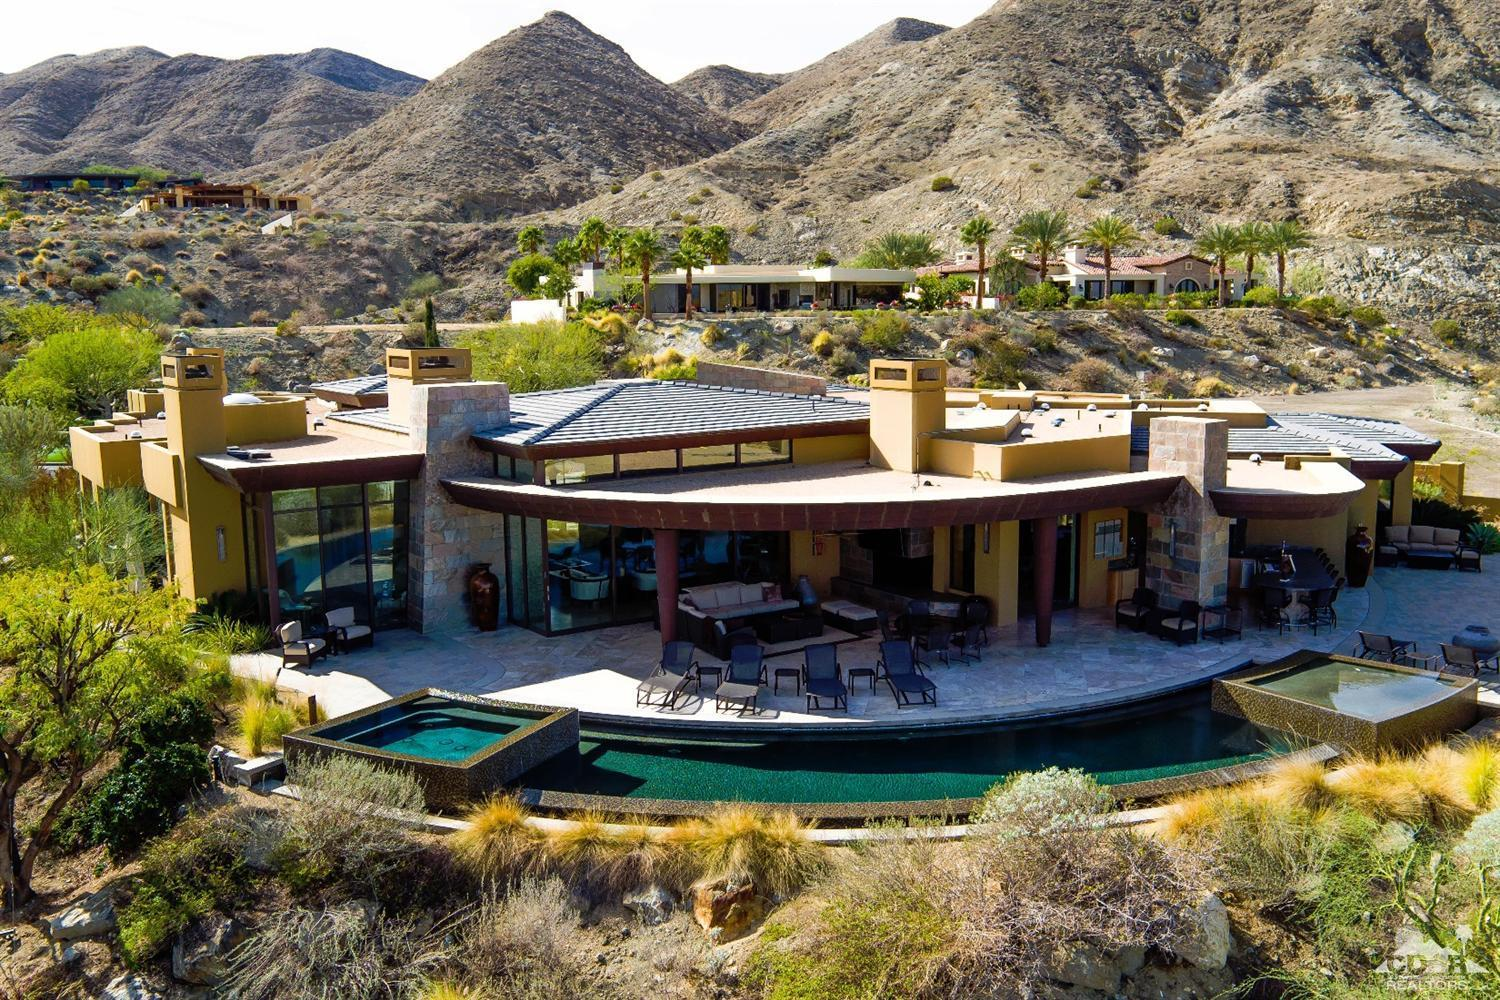 27 Stone Cliff, Rancho Mirage, California 92270, 5 Bedrooms Bedrooms, ,7 BathroomsBathrooms,Residential,For Sale,27 Stone Cliff,218035242